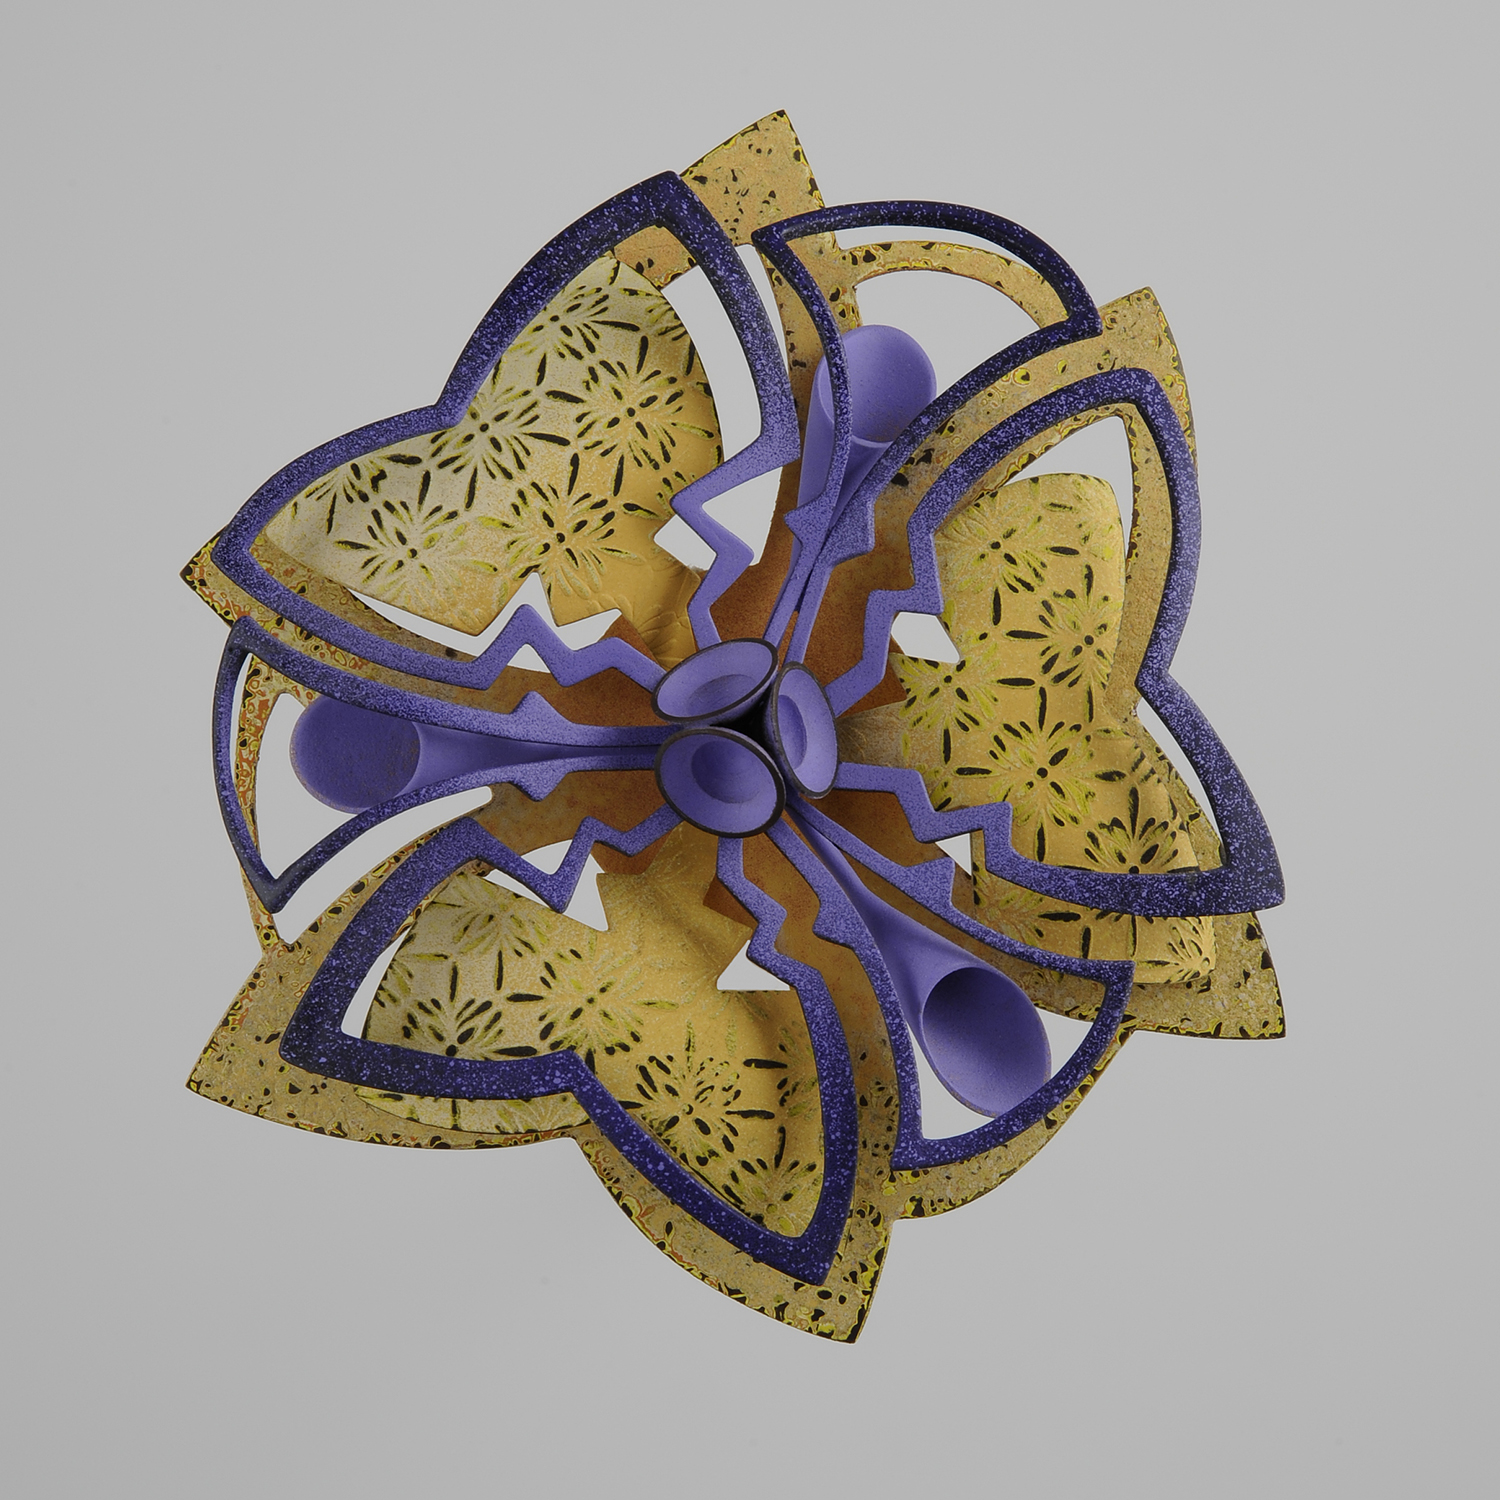 Rosette Brooch 28-16  |  2016  |  bronze, copper  |  5 x 5 x .75 inches